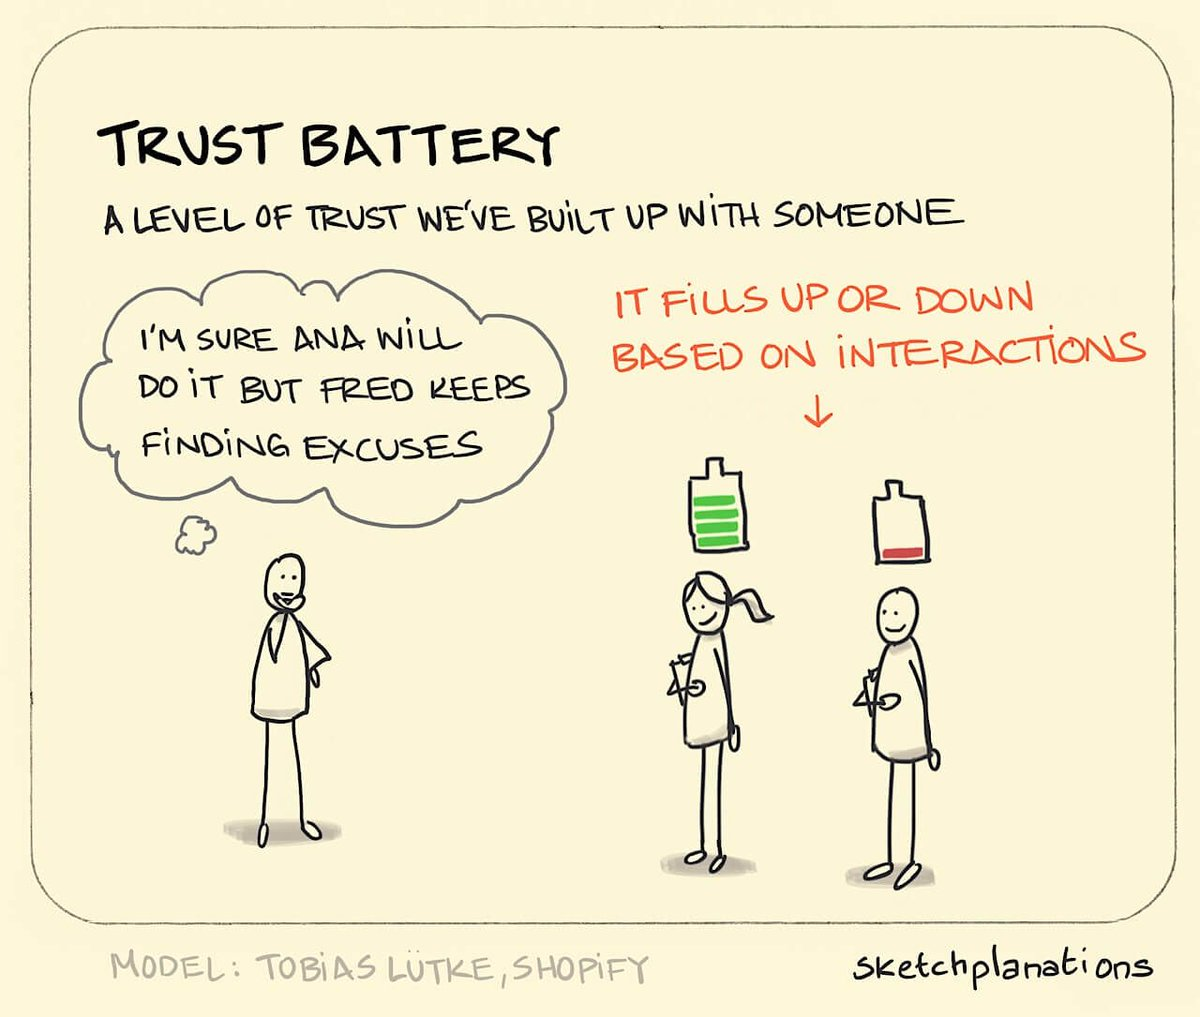 We know it intuitively: we trust each person we meet to varying degrees. The trust battery is a metaphor that helps you think about and visualise these trust levels. The concept is from @tobi Lütke, CEO of @Shopify